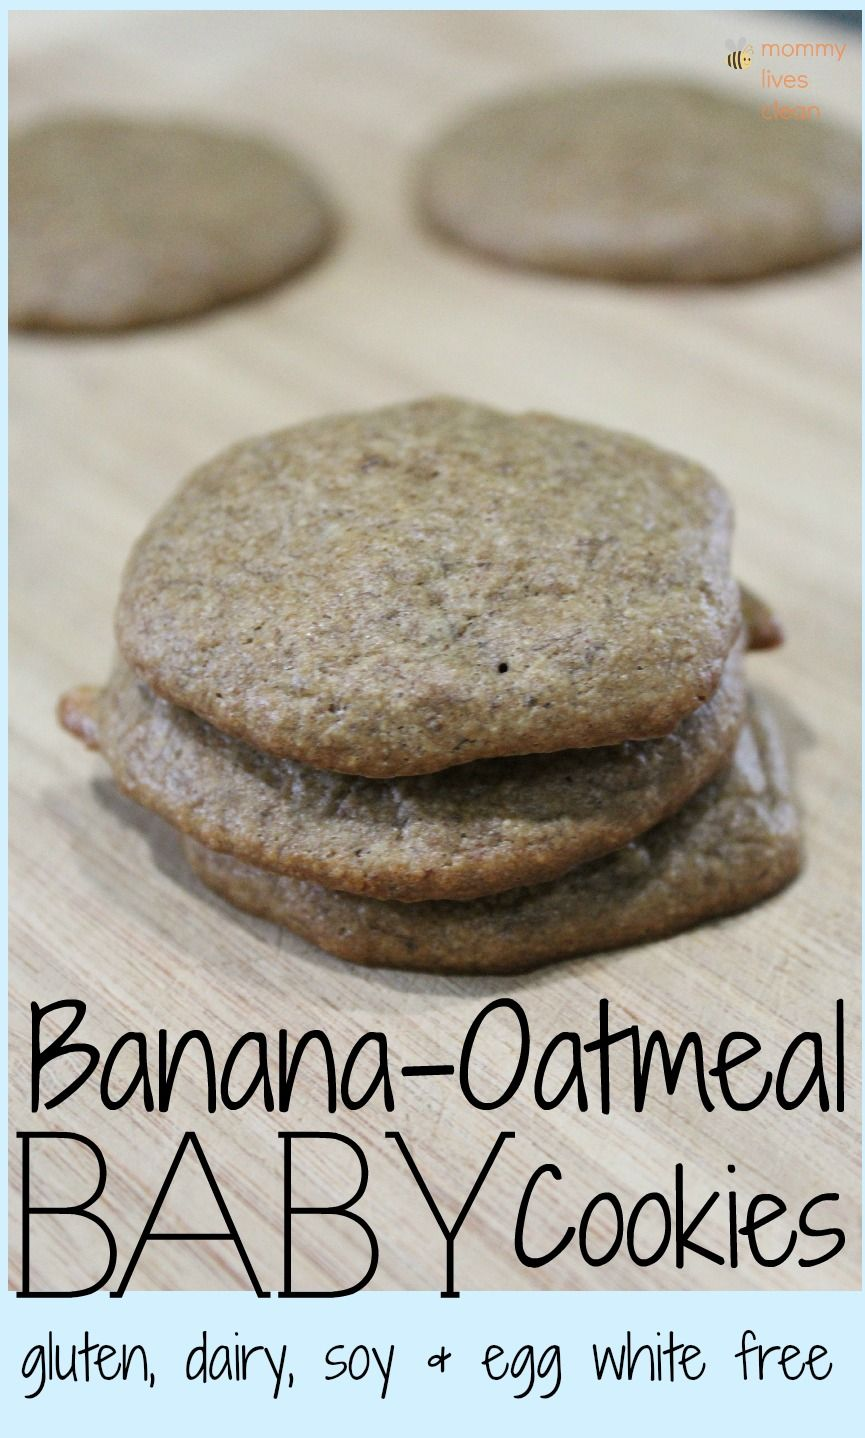 Allergy free recipe for homemade healthy banana oatmeal baby food allergy free recipe for homemade healthy banana oatmeal baby food cookies gluten free forumfinder Gallery